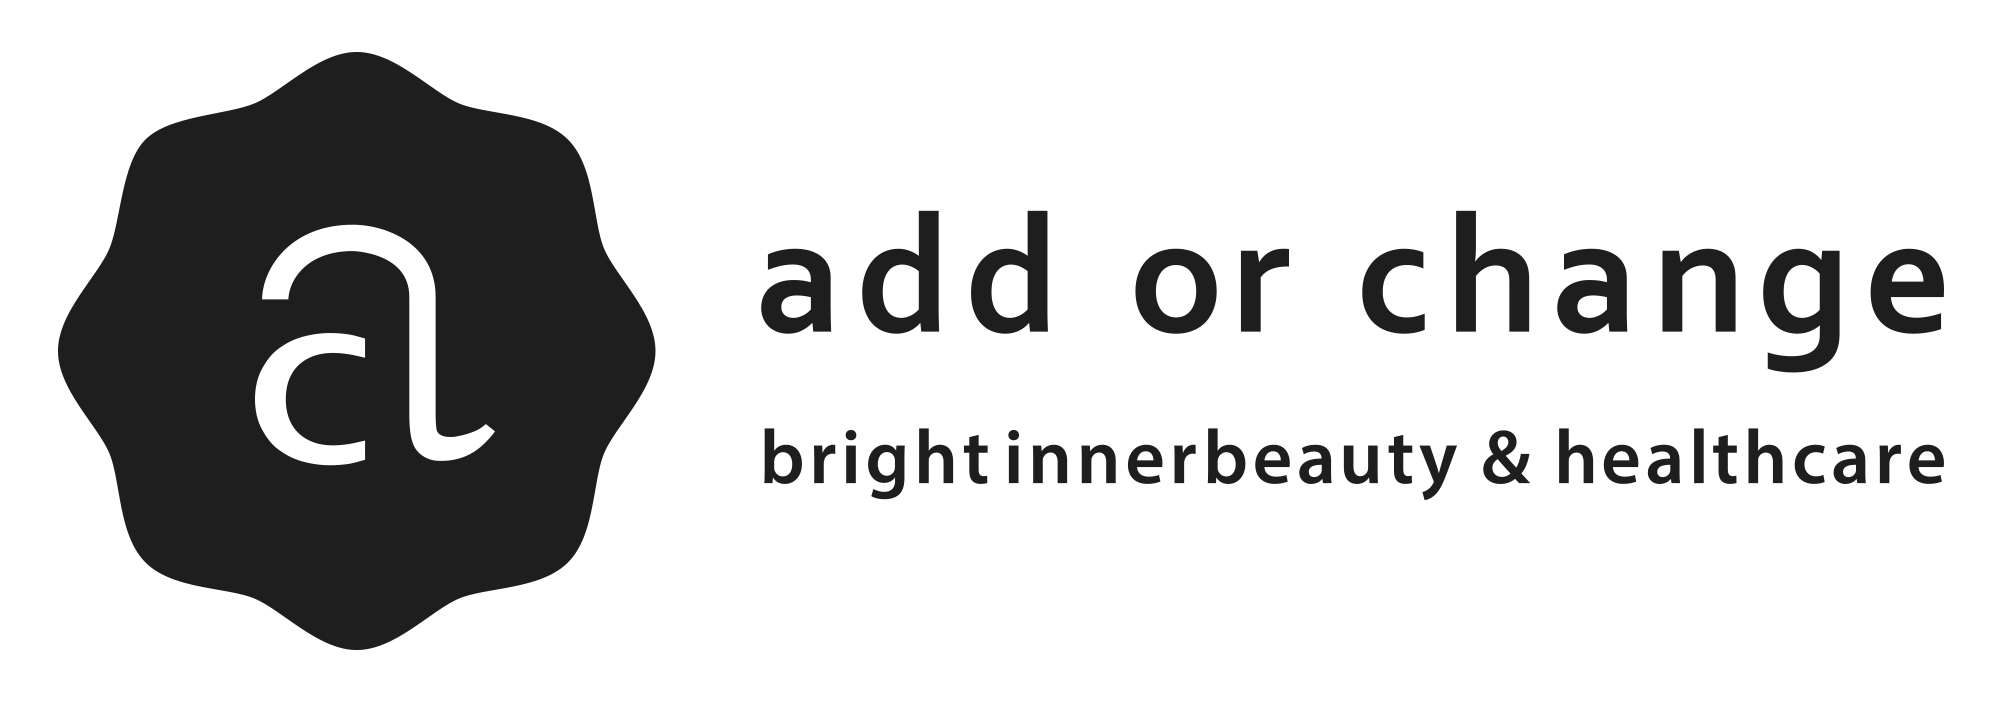 add or change -bright innerbeauty & healthcare-